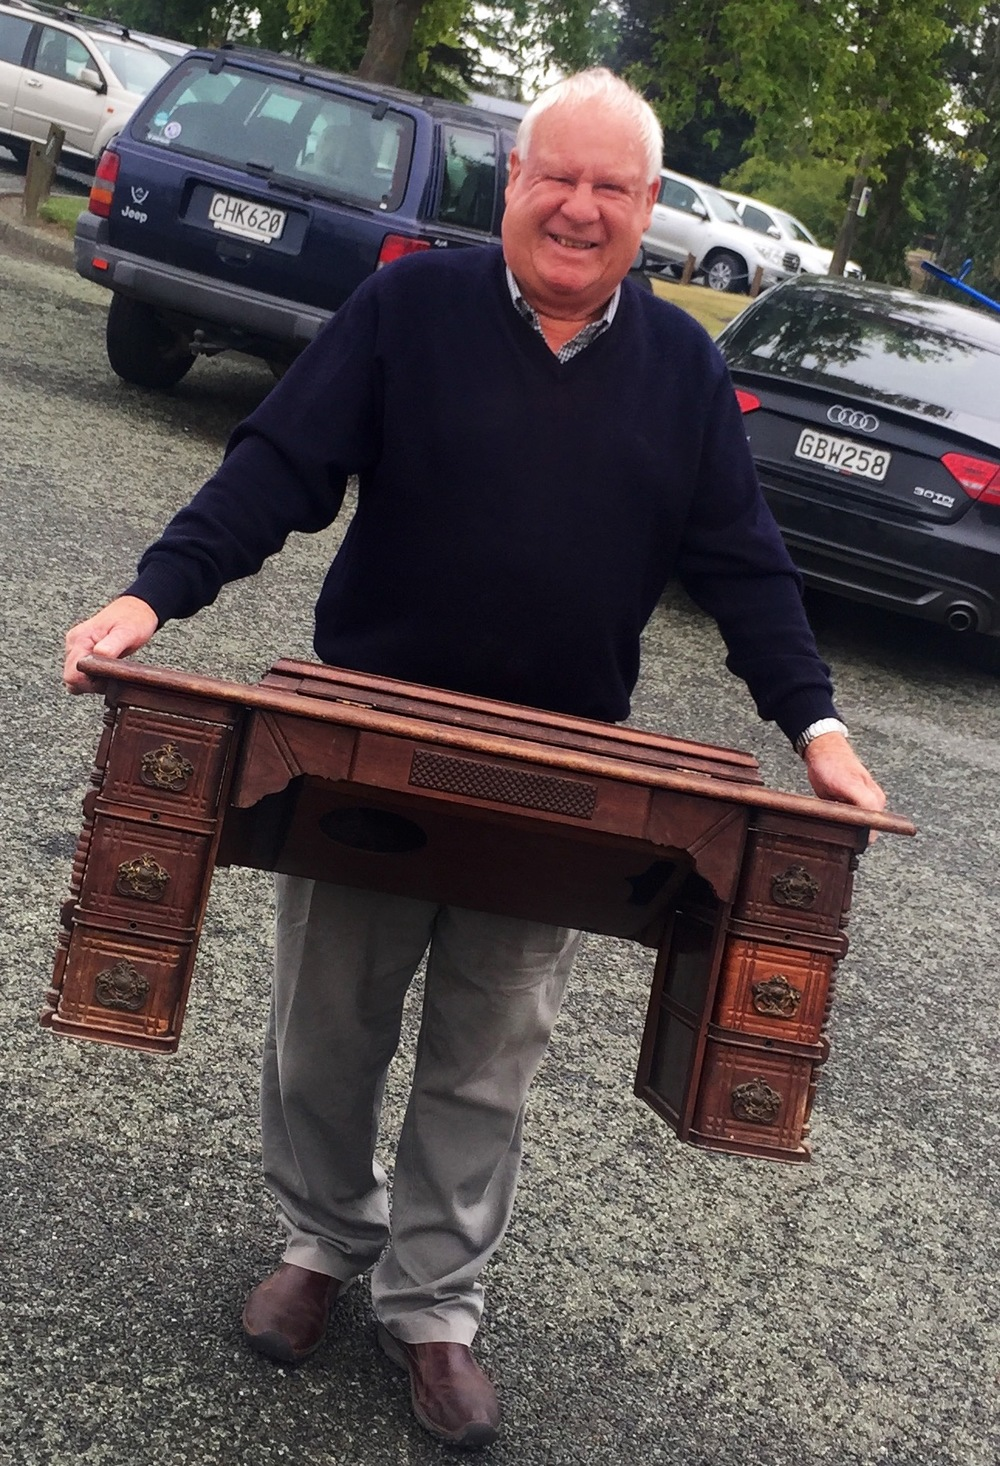 This is a sowing machine cabinet that Dorri stripped the middle right draw of,this man appears to be pleased with the result.